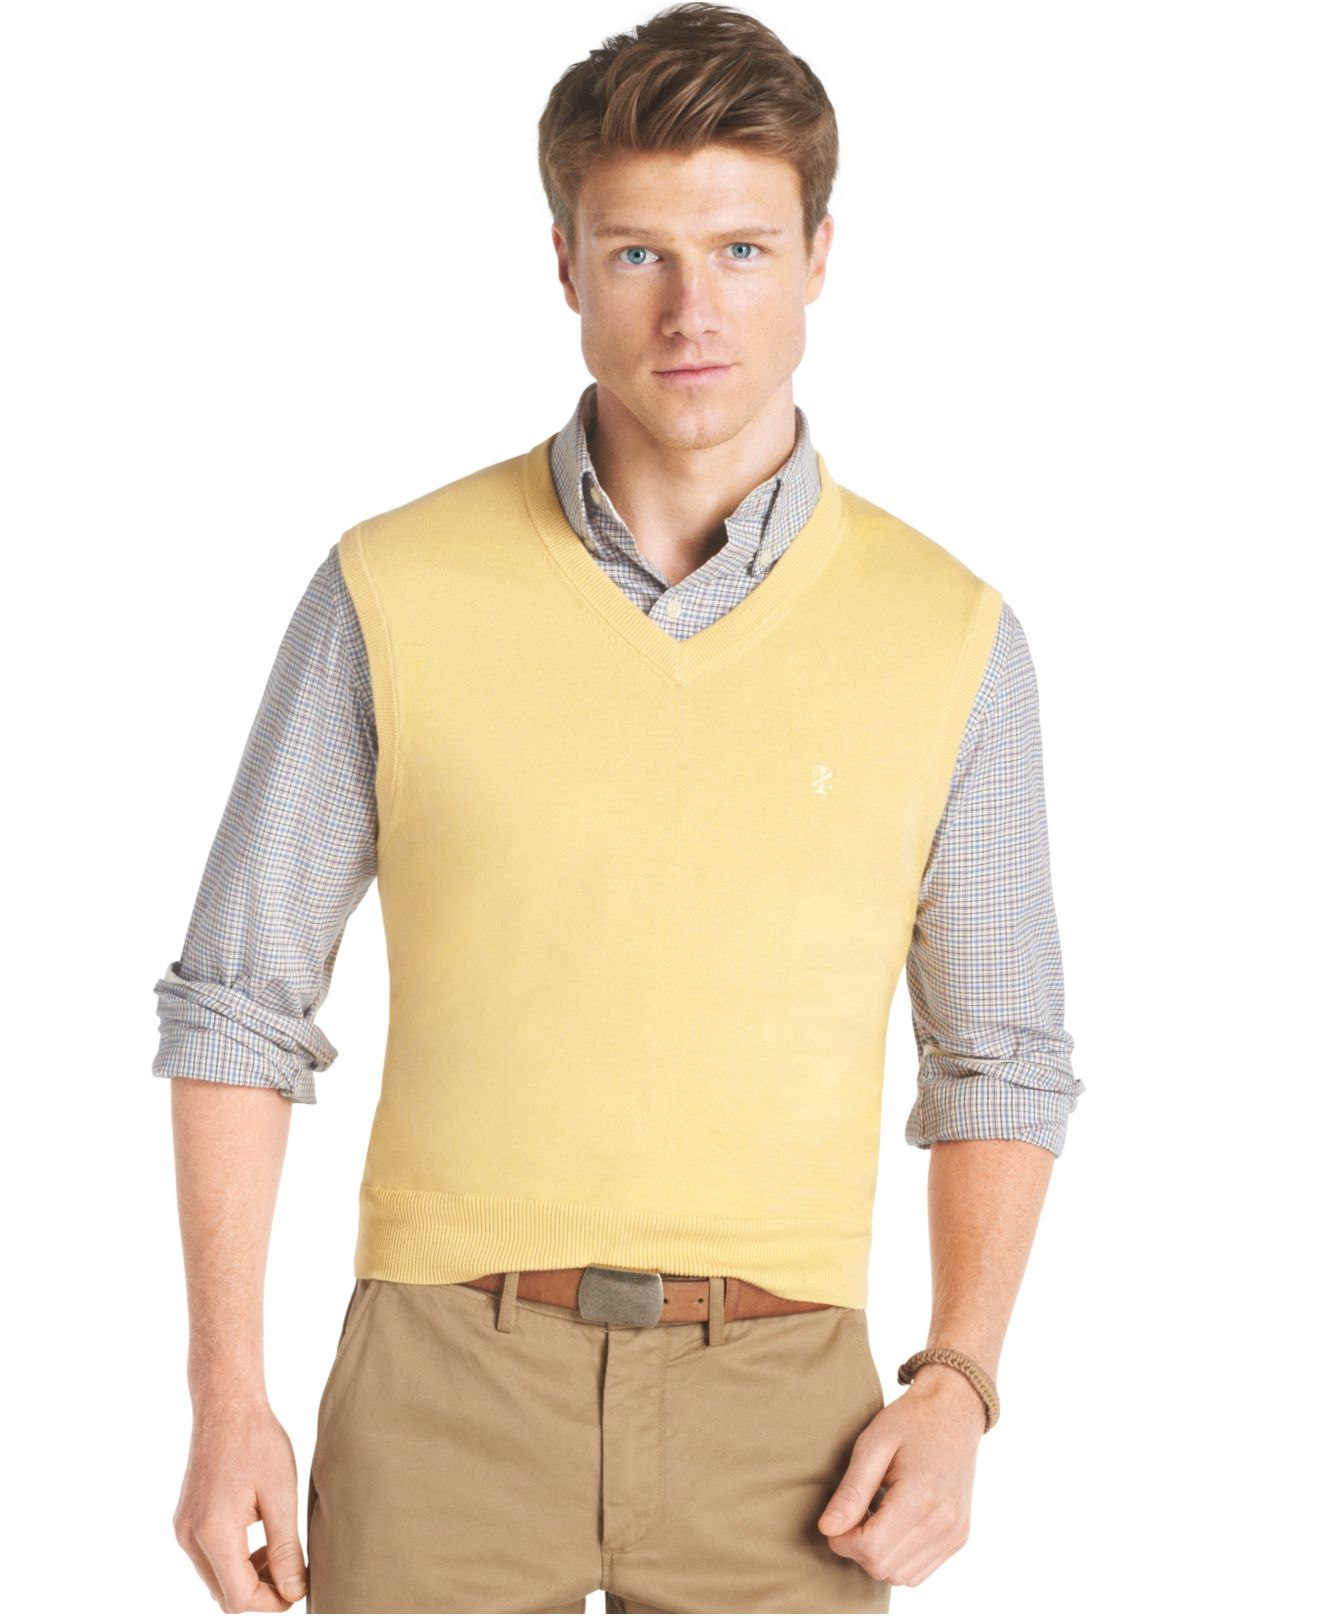 Izod Essential Lightweight V-Neck Fine Gauge Sweater Vest in ...